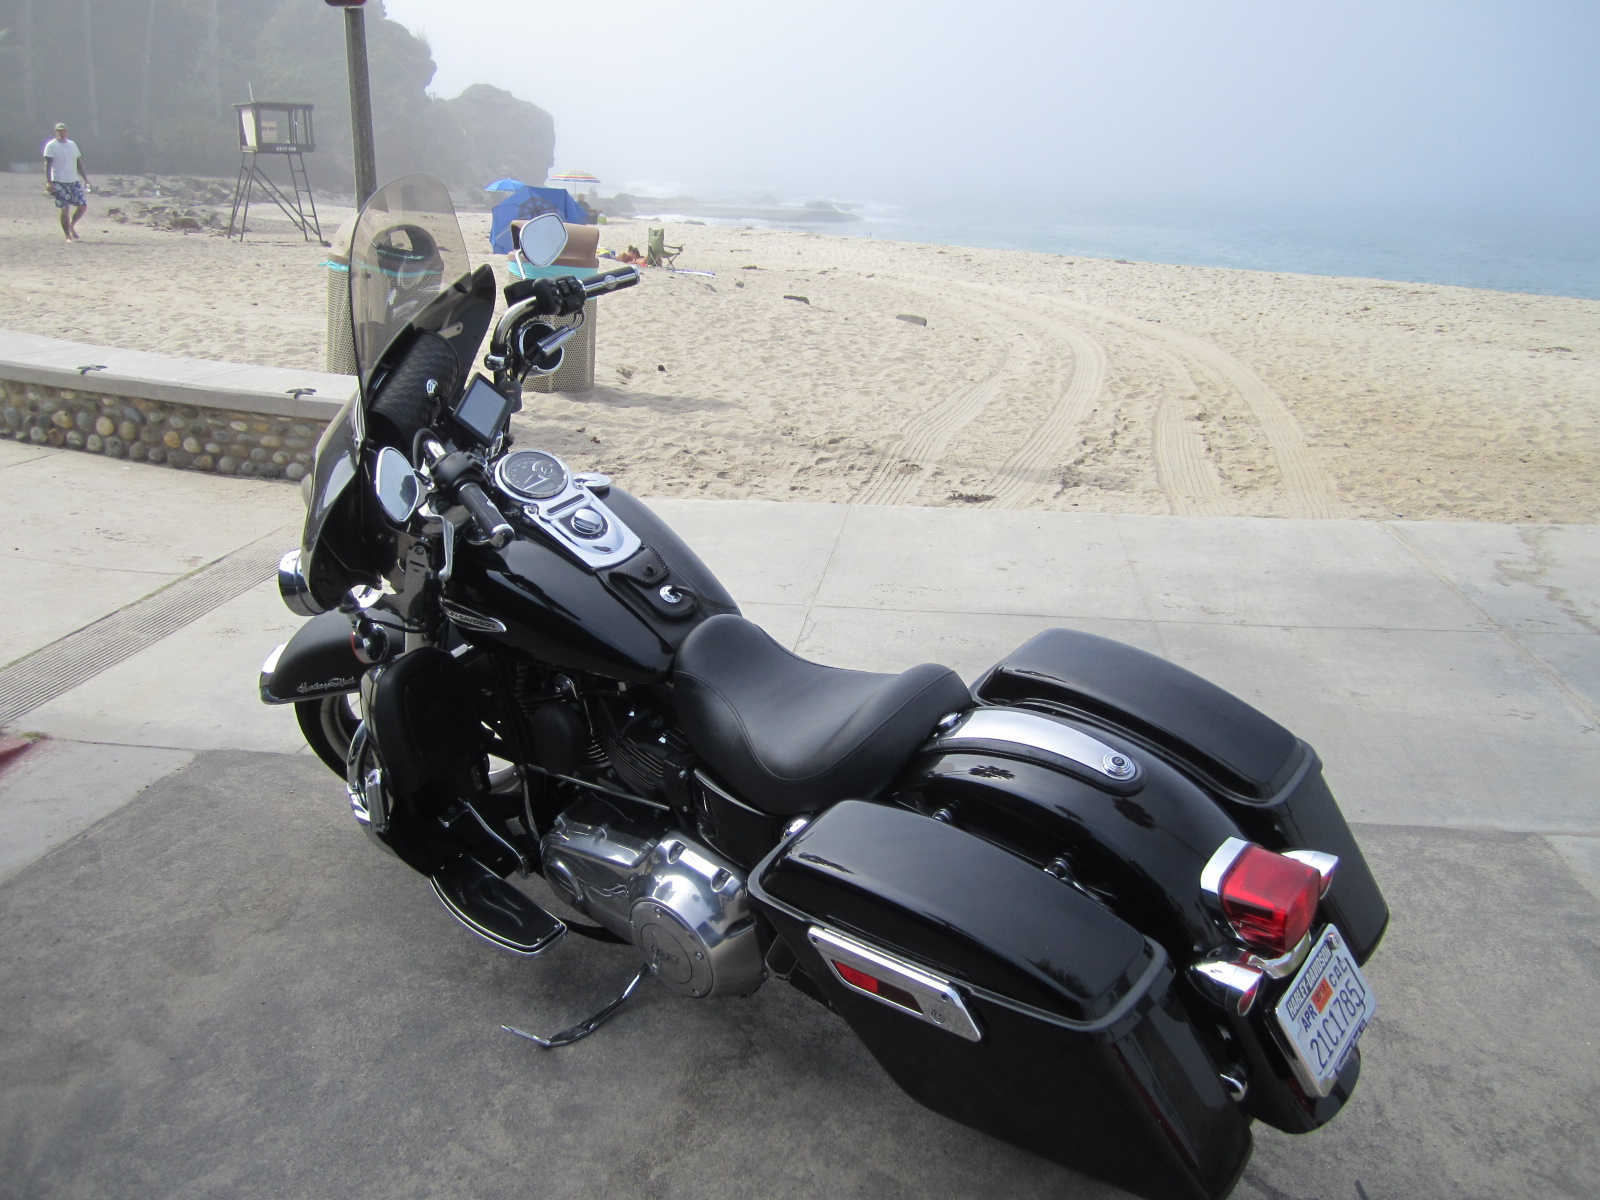 Pics of fairings and batwings on Dyna's - Page 3 - Harley